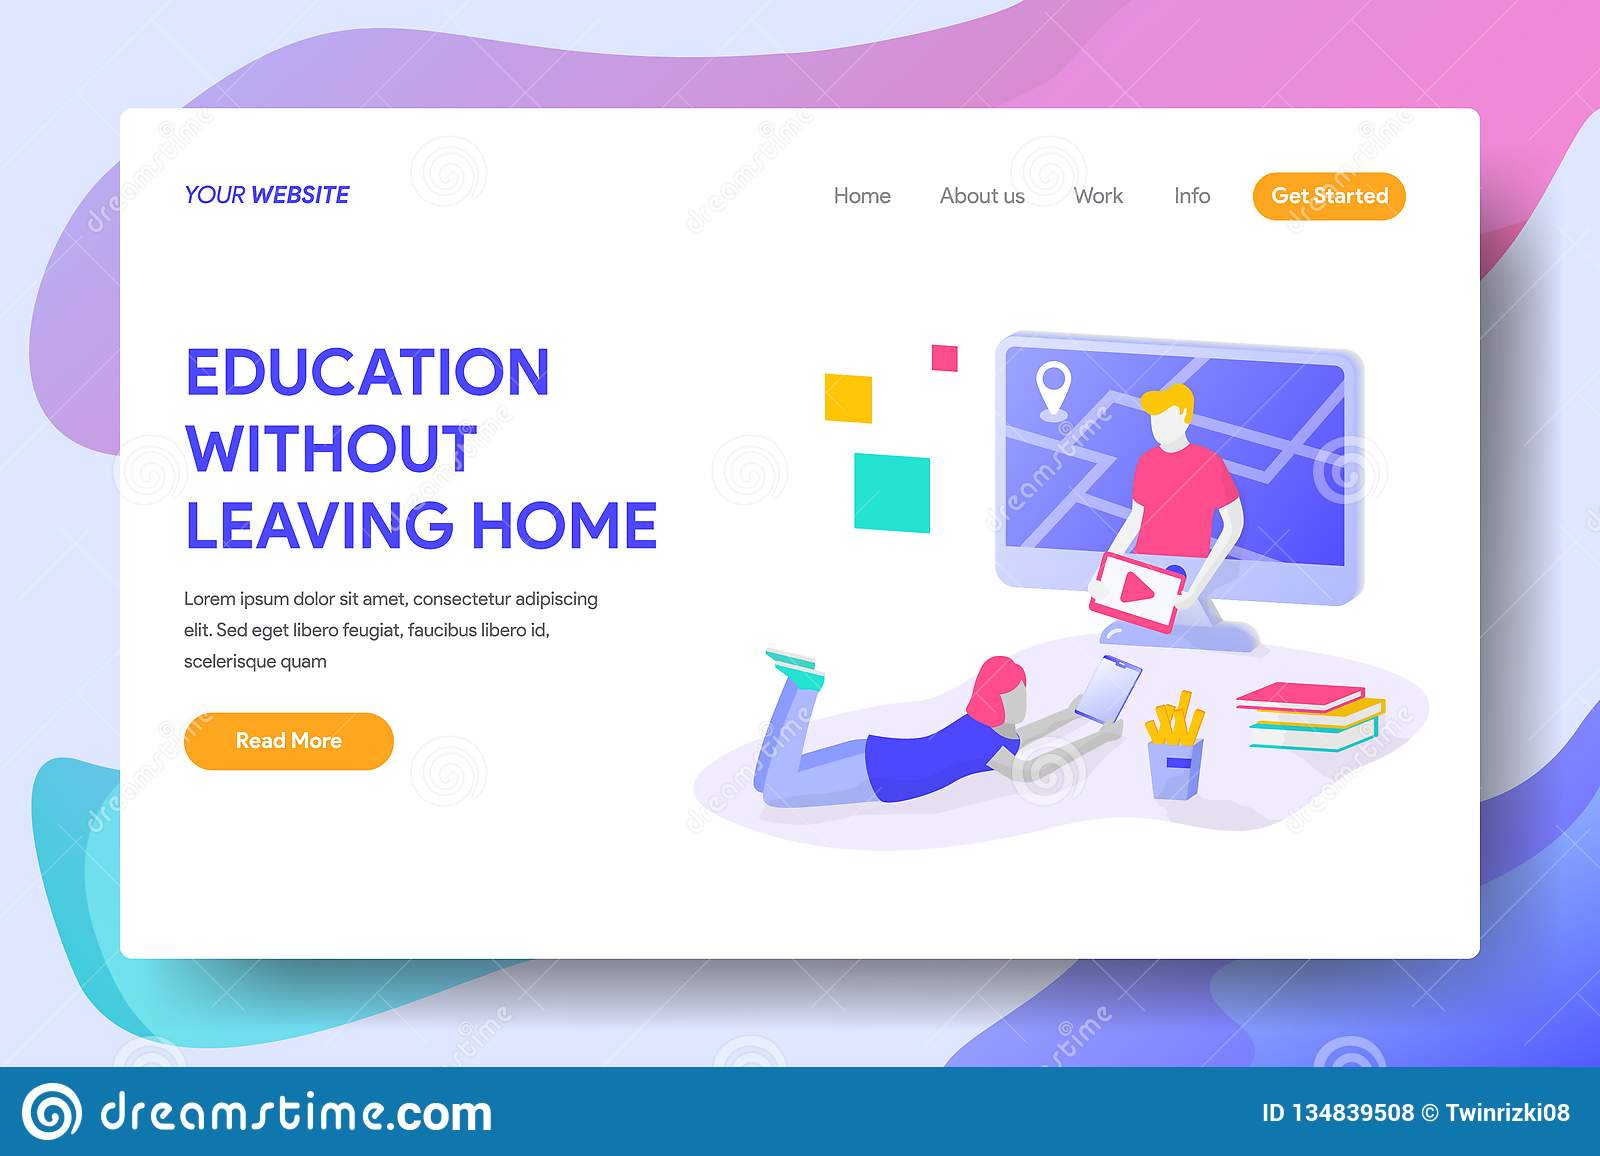 EDUCATION WITHOUT LEAVING HOME